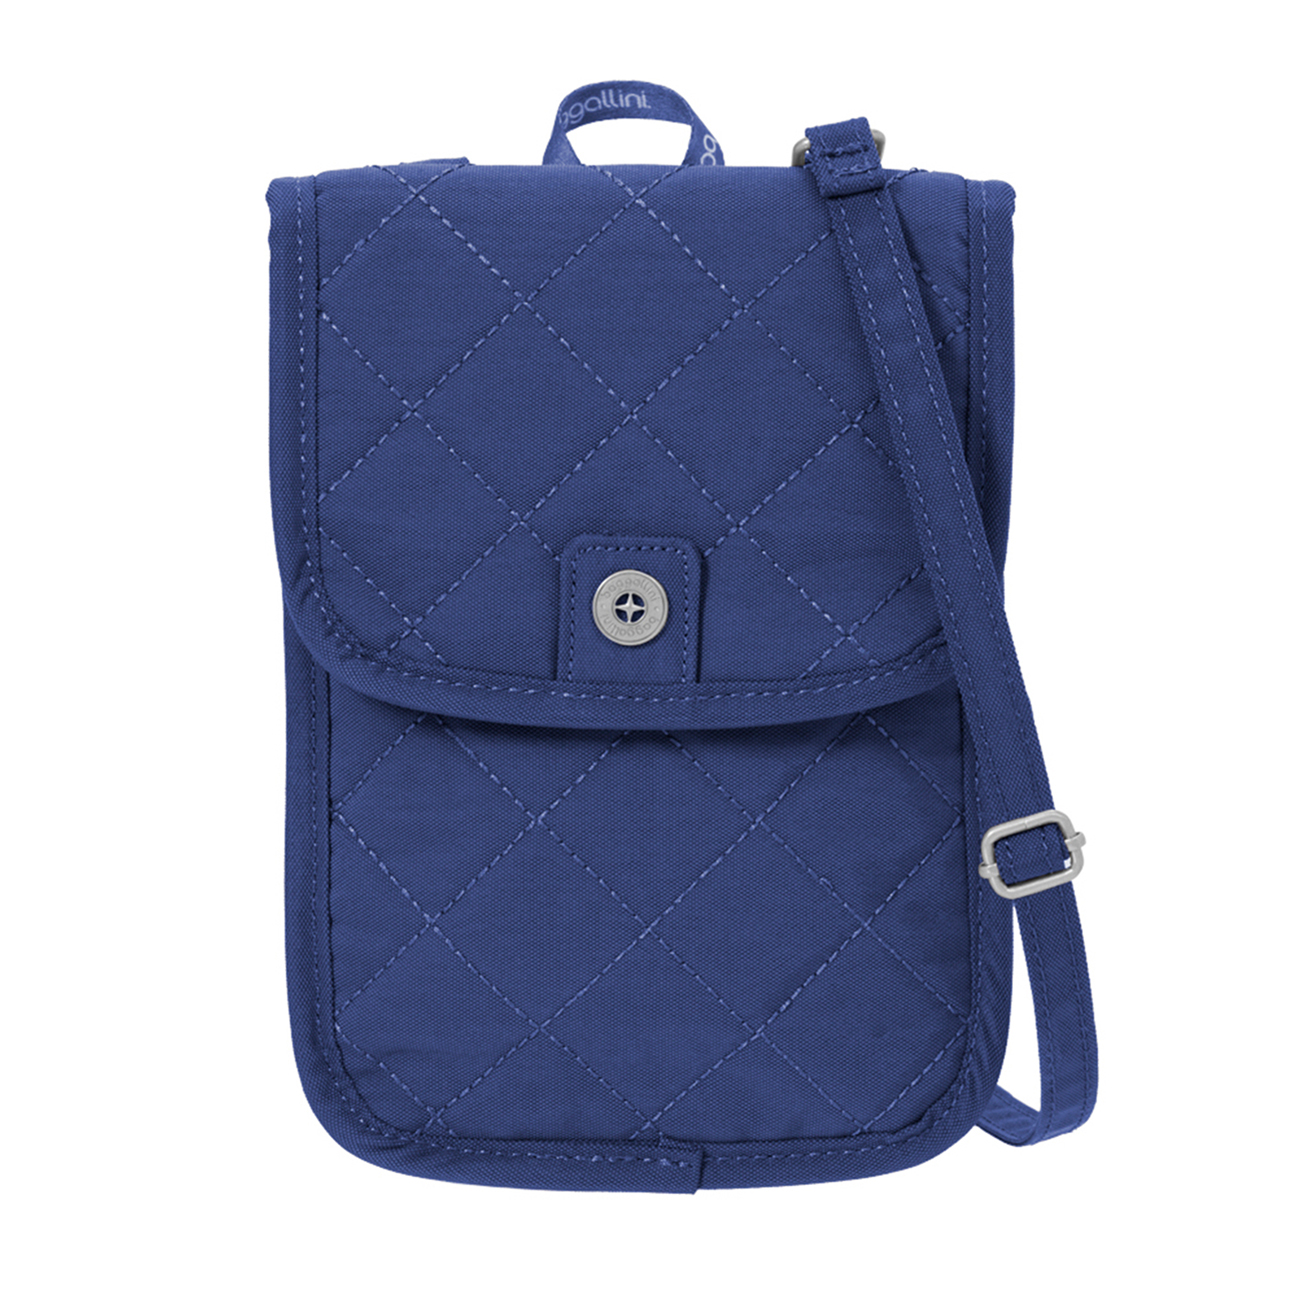 Passport Bedding Accessories Baggallini Royal Blue Mint Rfid Passport Crossbody